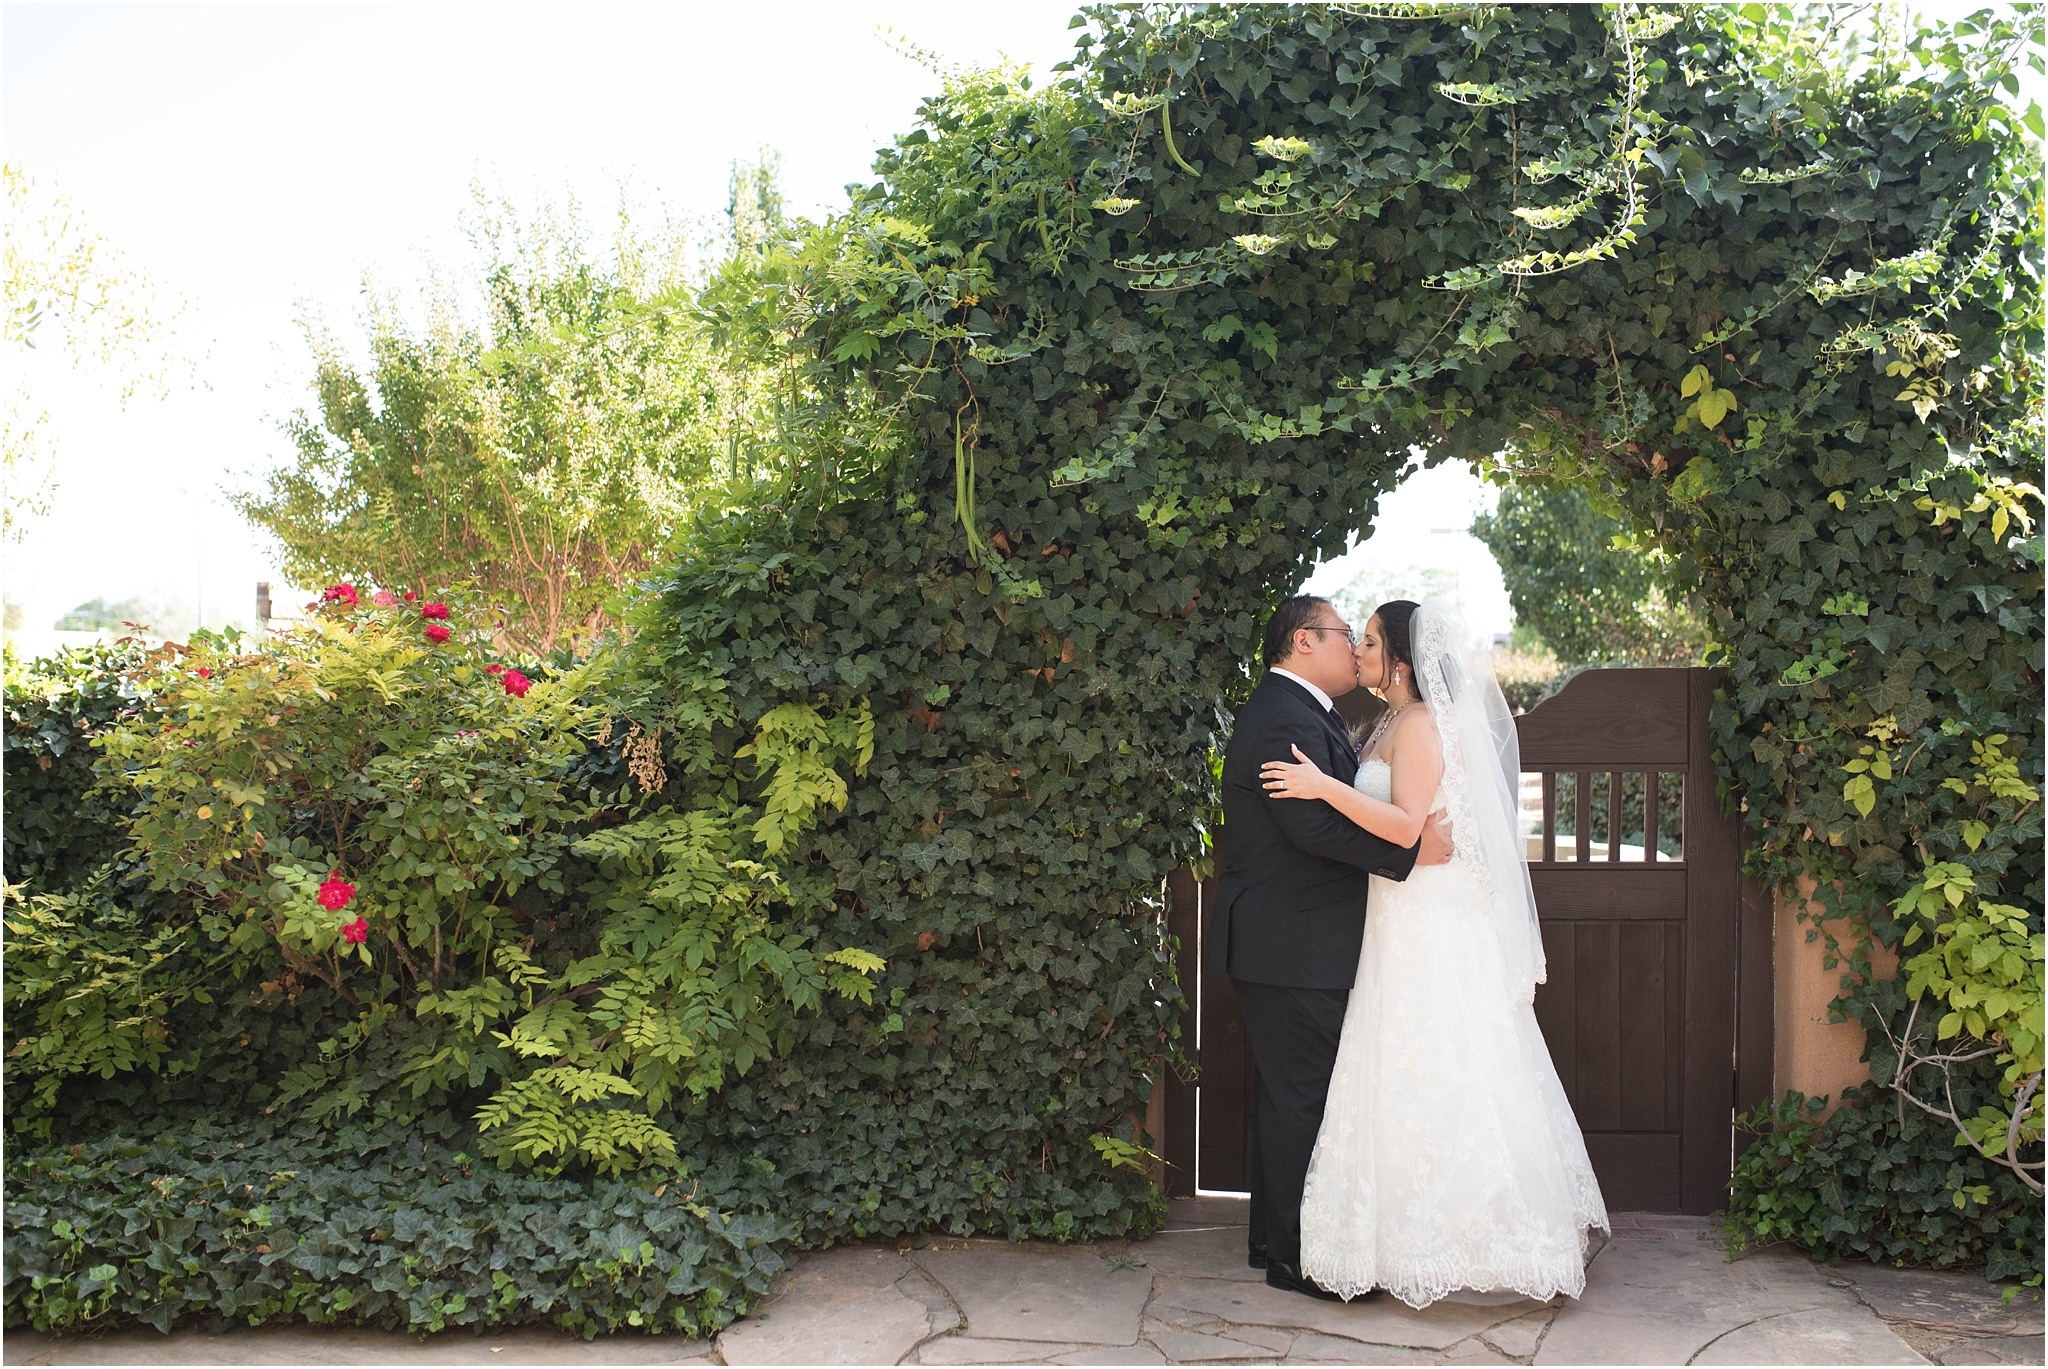 kayla kitts photography - new mexico wedding photographer - albuquerque botanic gardens - hotel albuquerque_0012.jpg